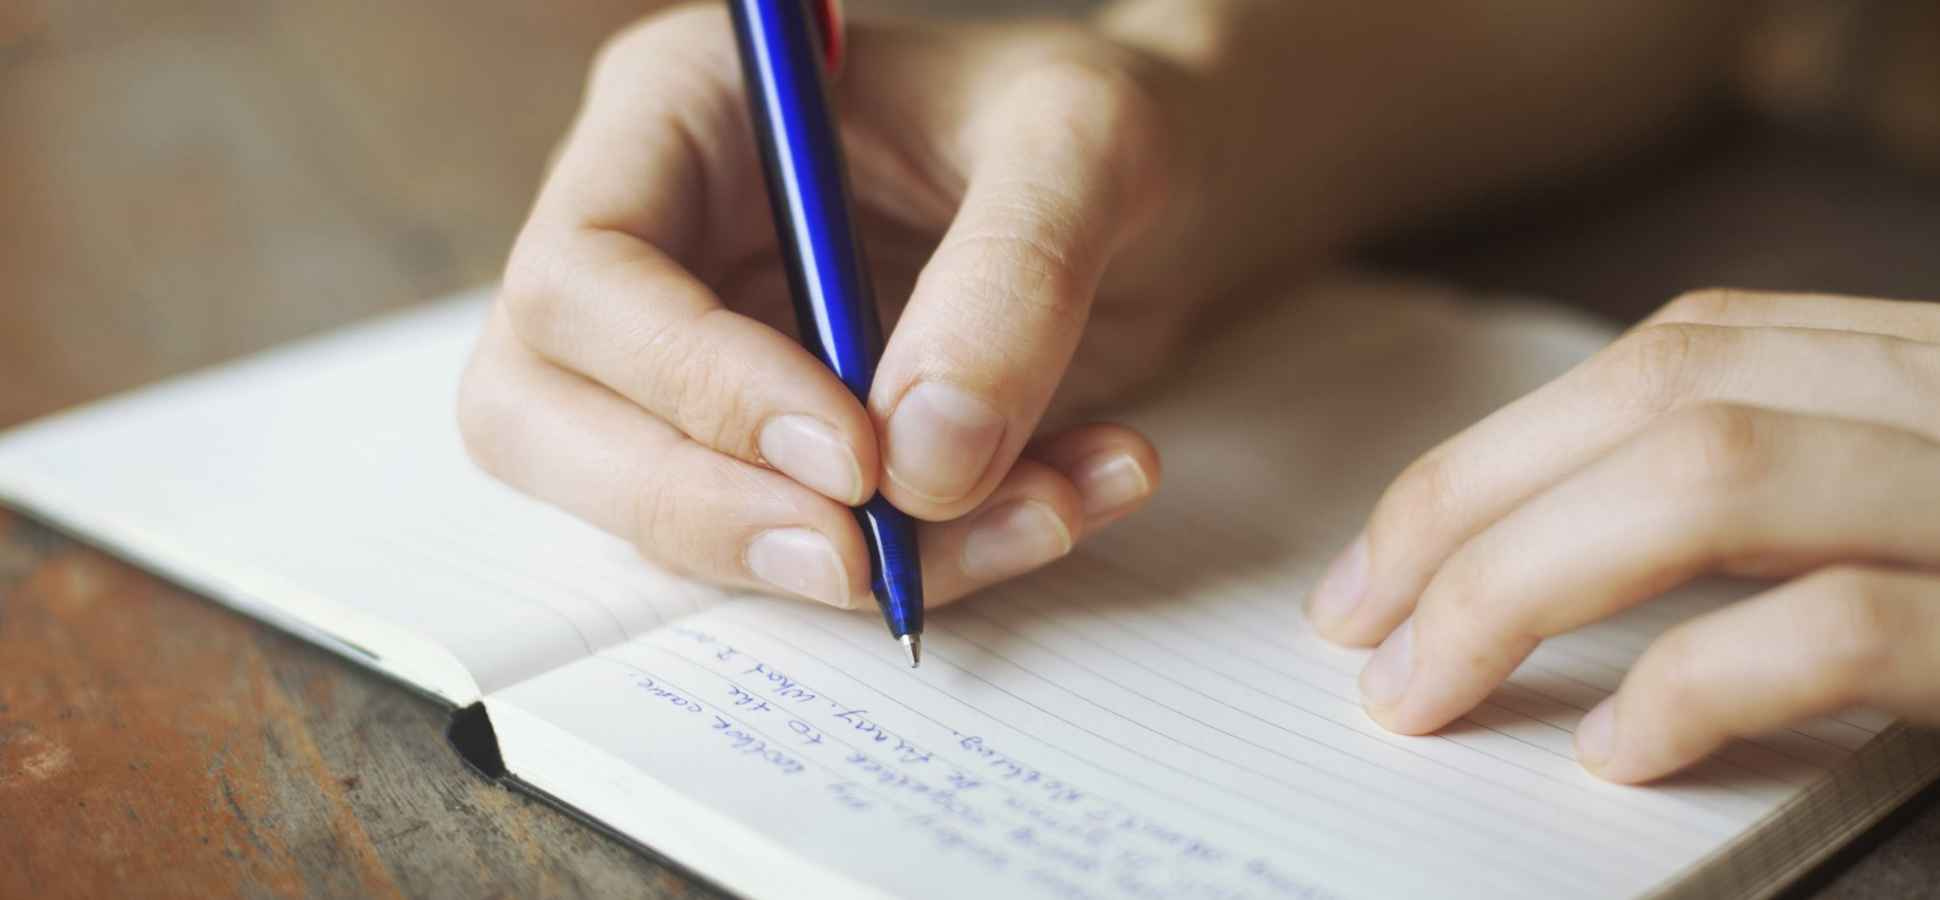 Why Writing Is the Most Important Skill an Entrepreneur Should Master